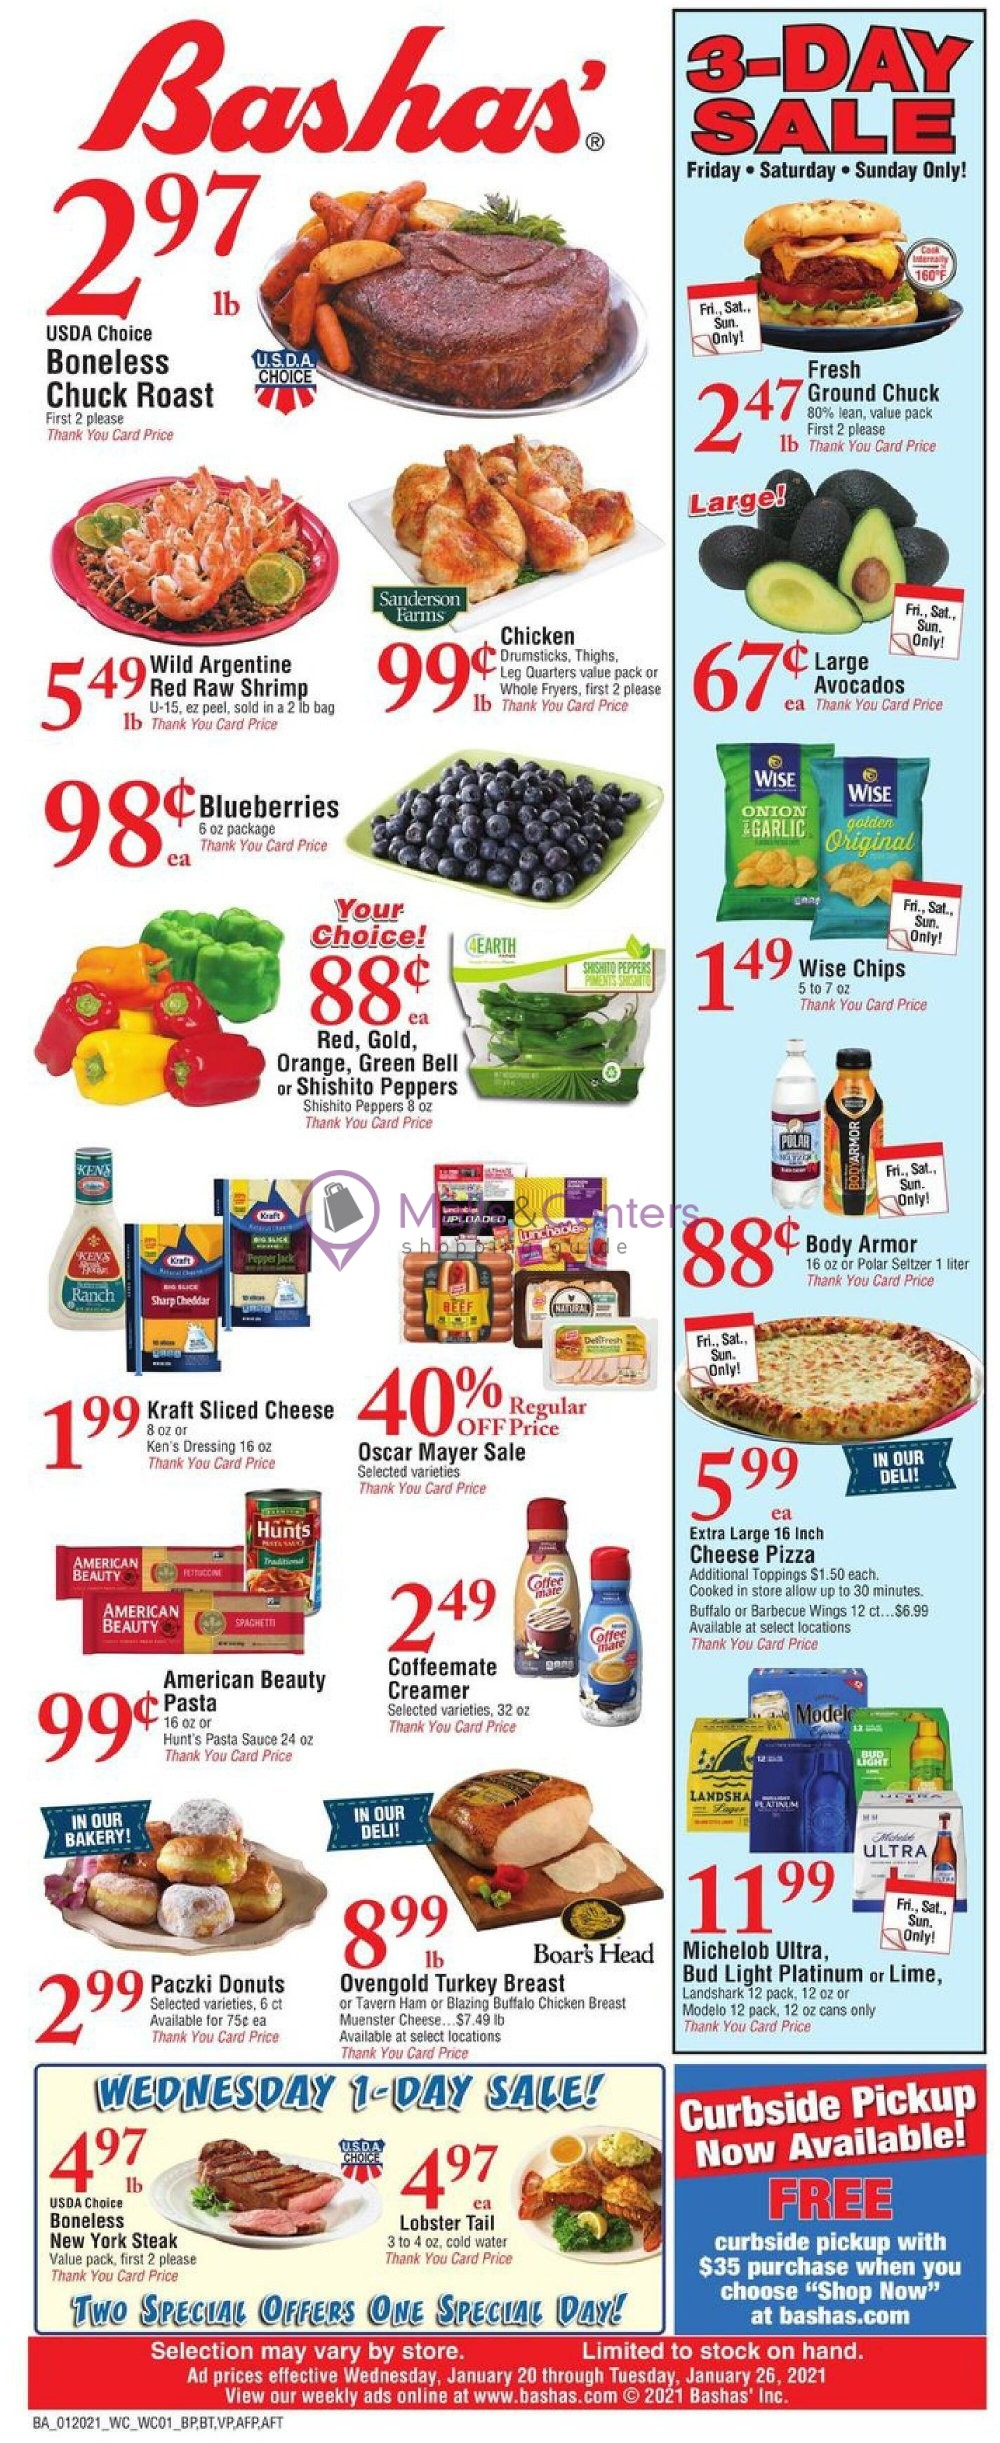 weekly ads Bashas' - page 1 - mallscenters.com